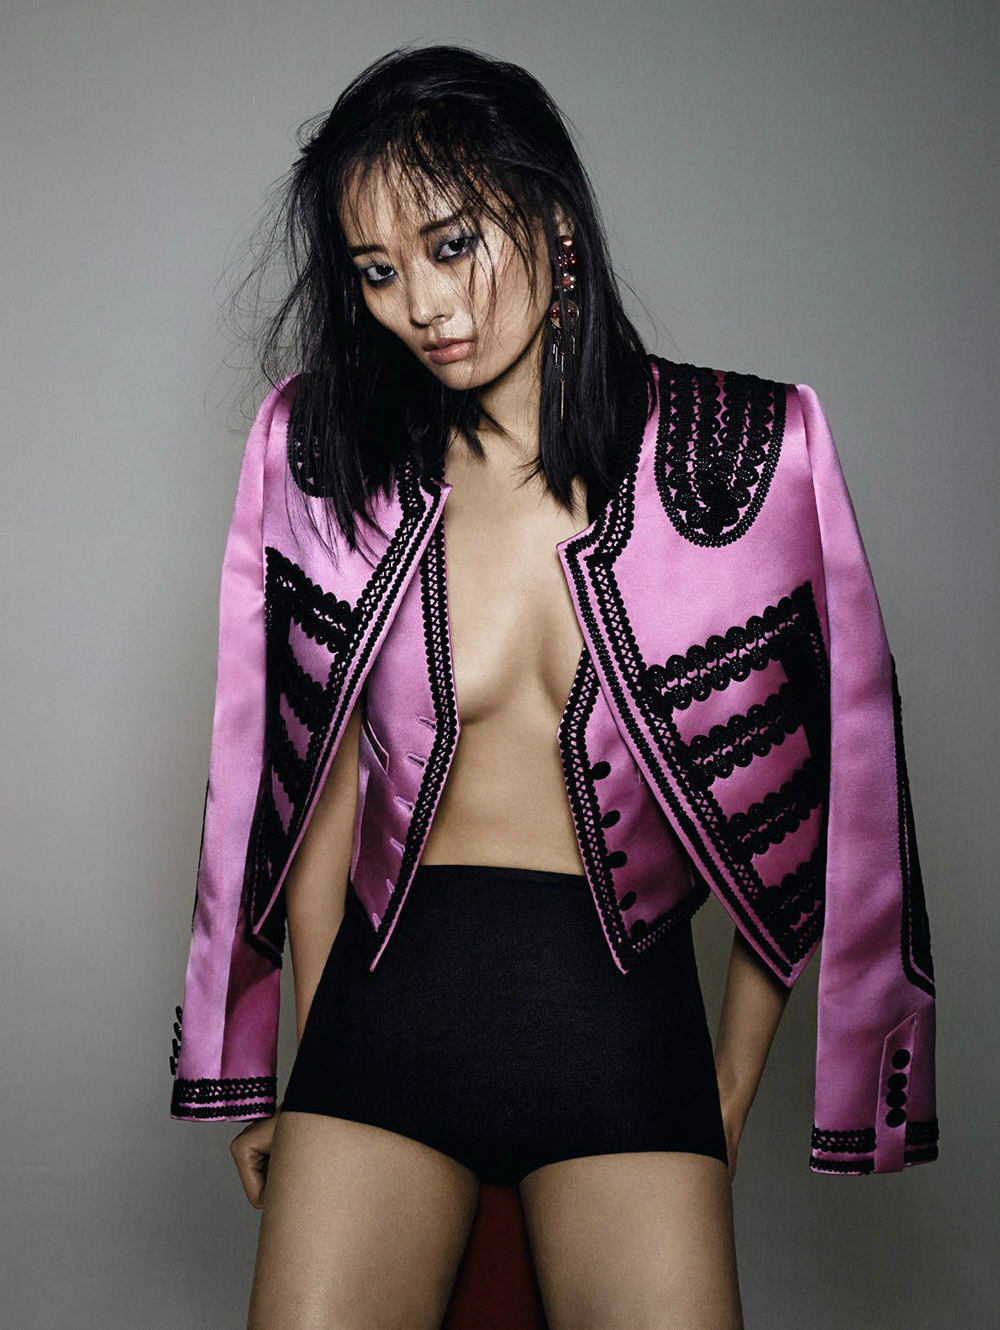 bjarne-jonasson-li-xiao-xing-elle-uk-march-2015-8.jpg